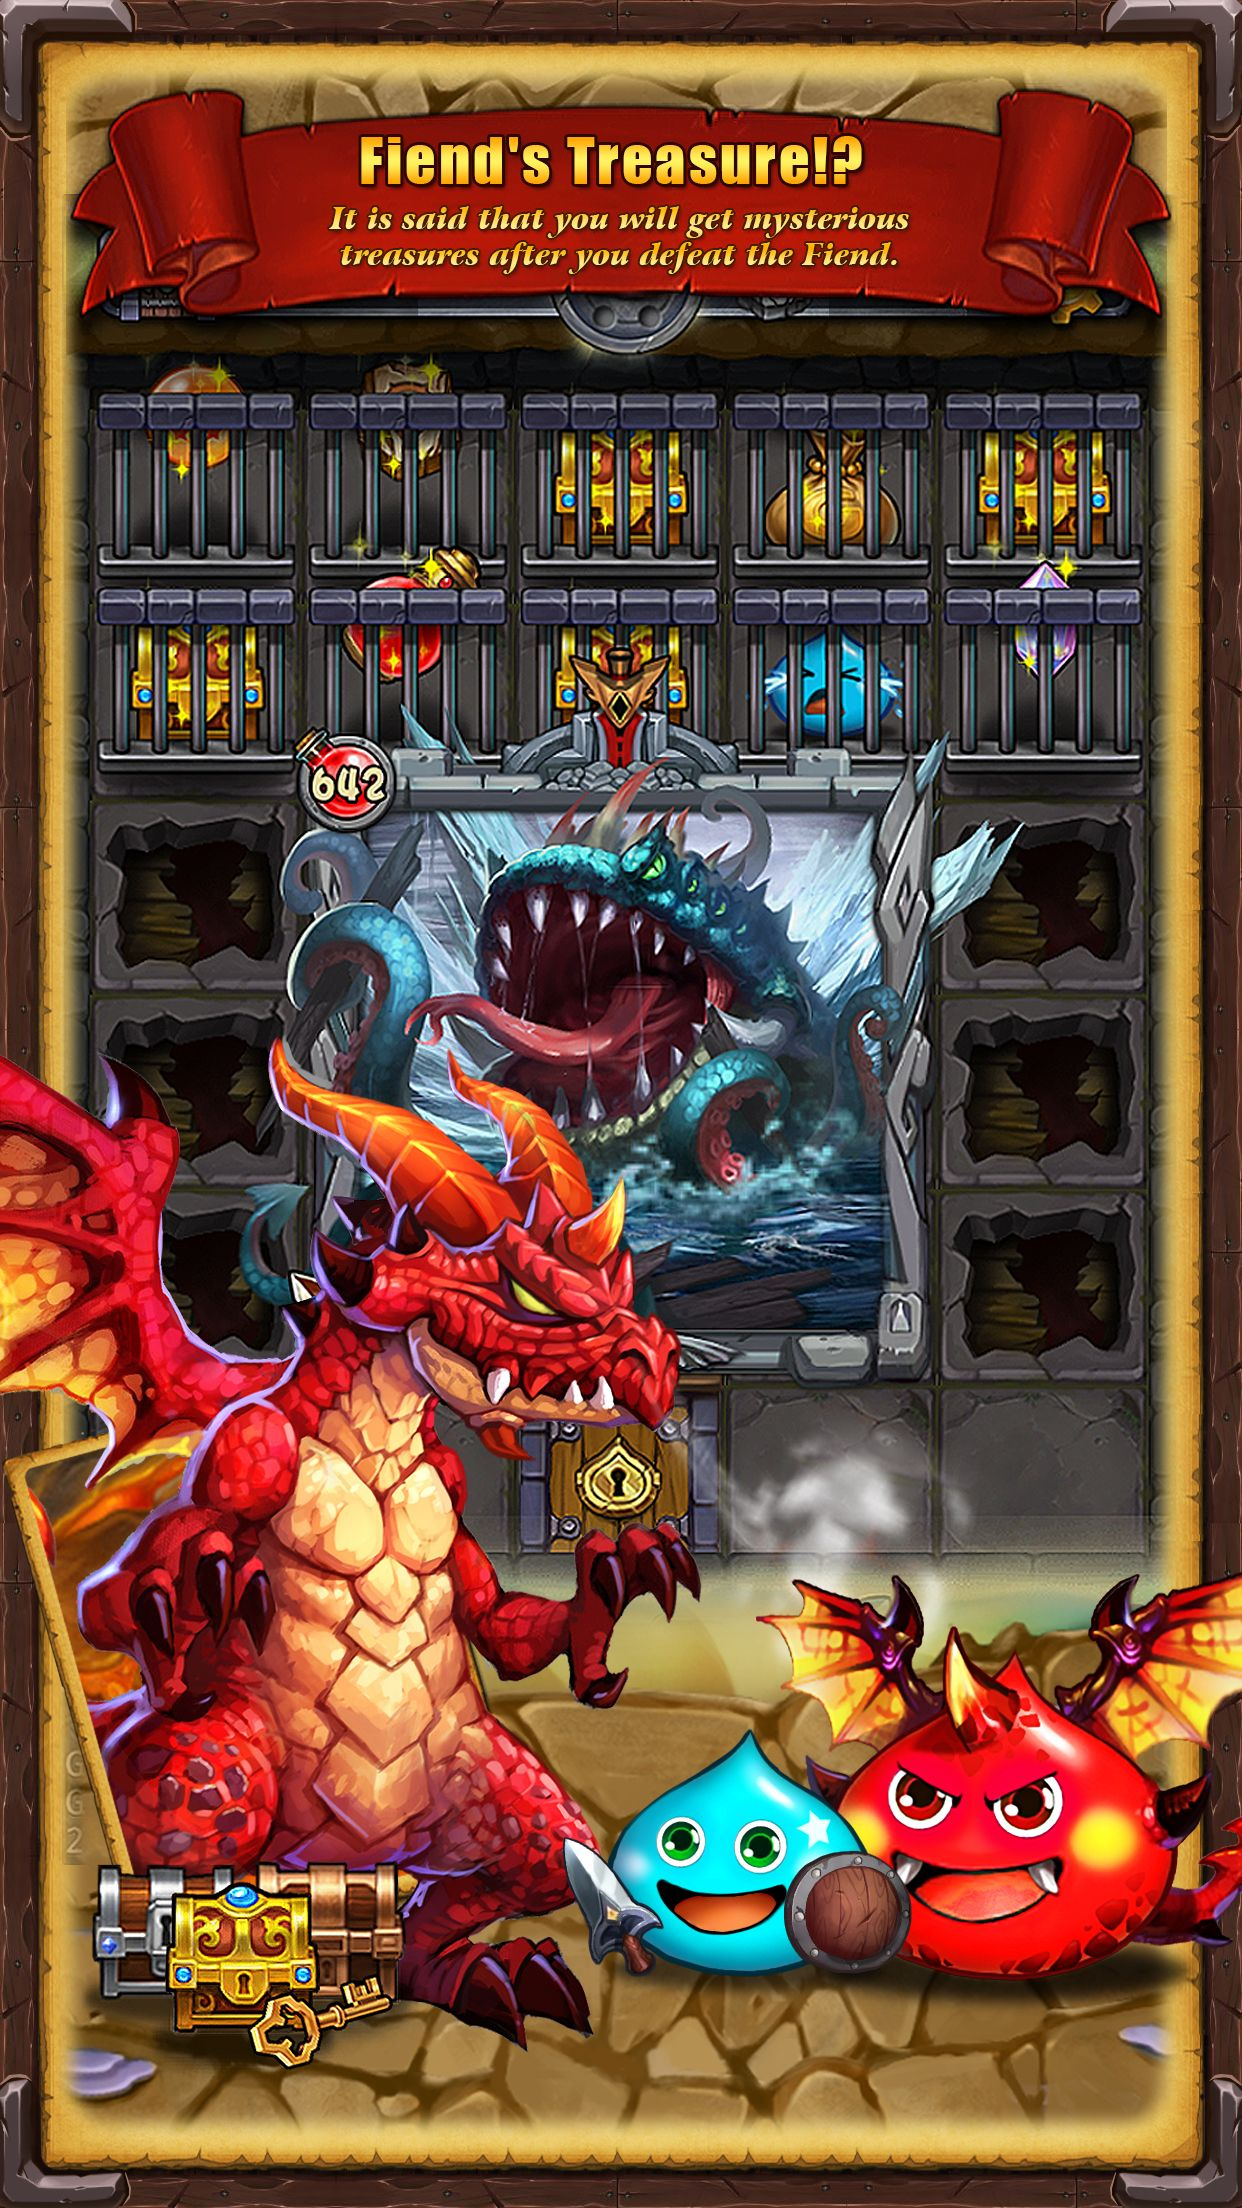 Pin by Slime Dungeon on Slime Dungeon Playstore, Mobile